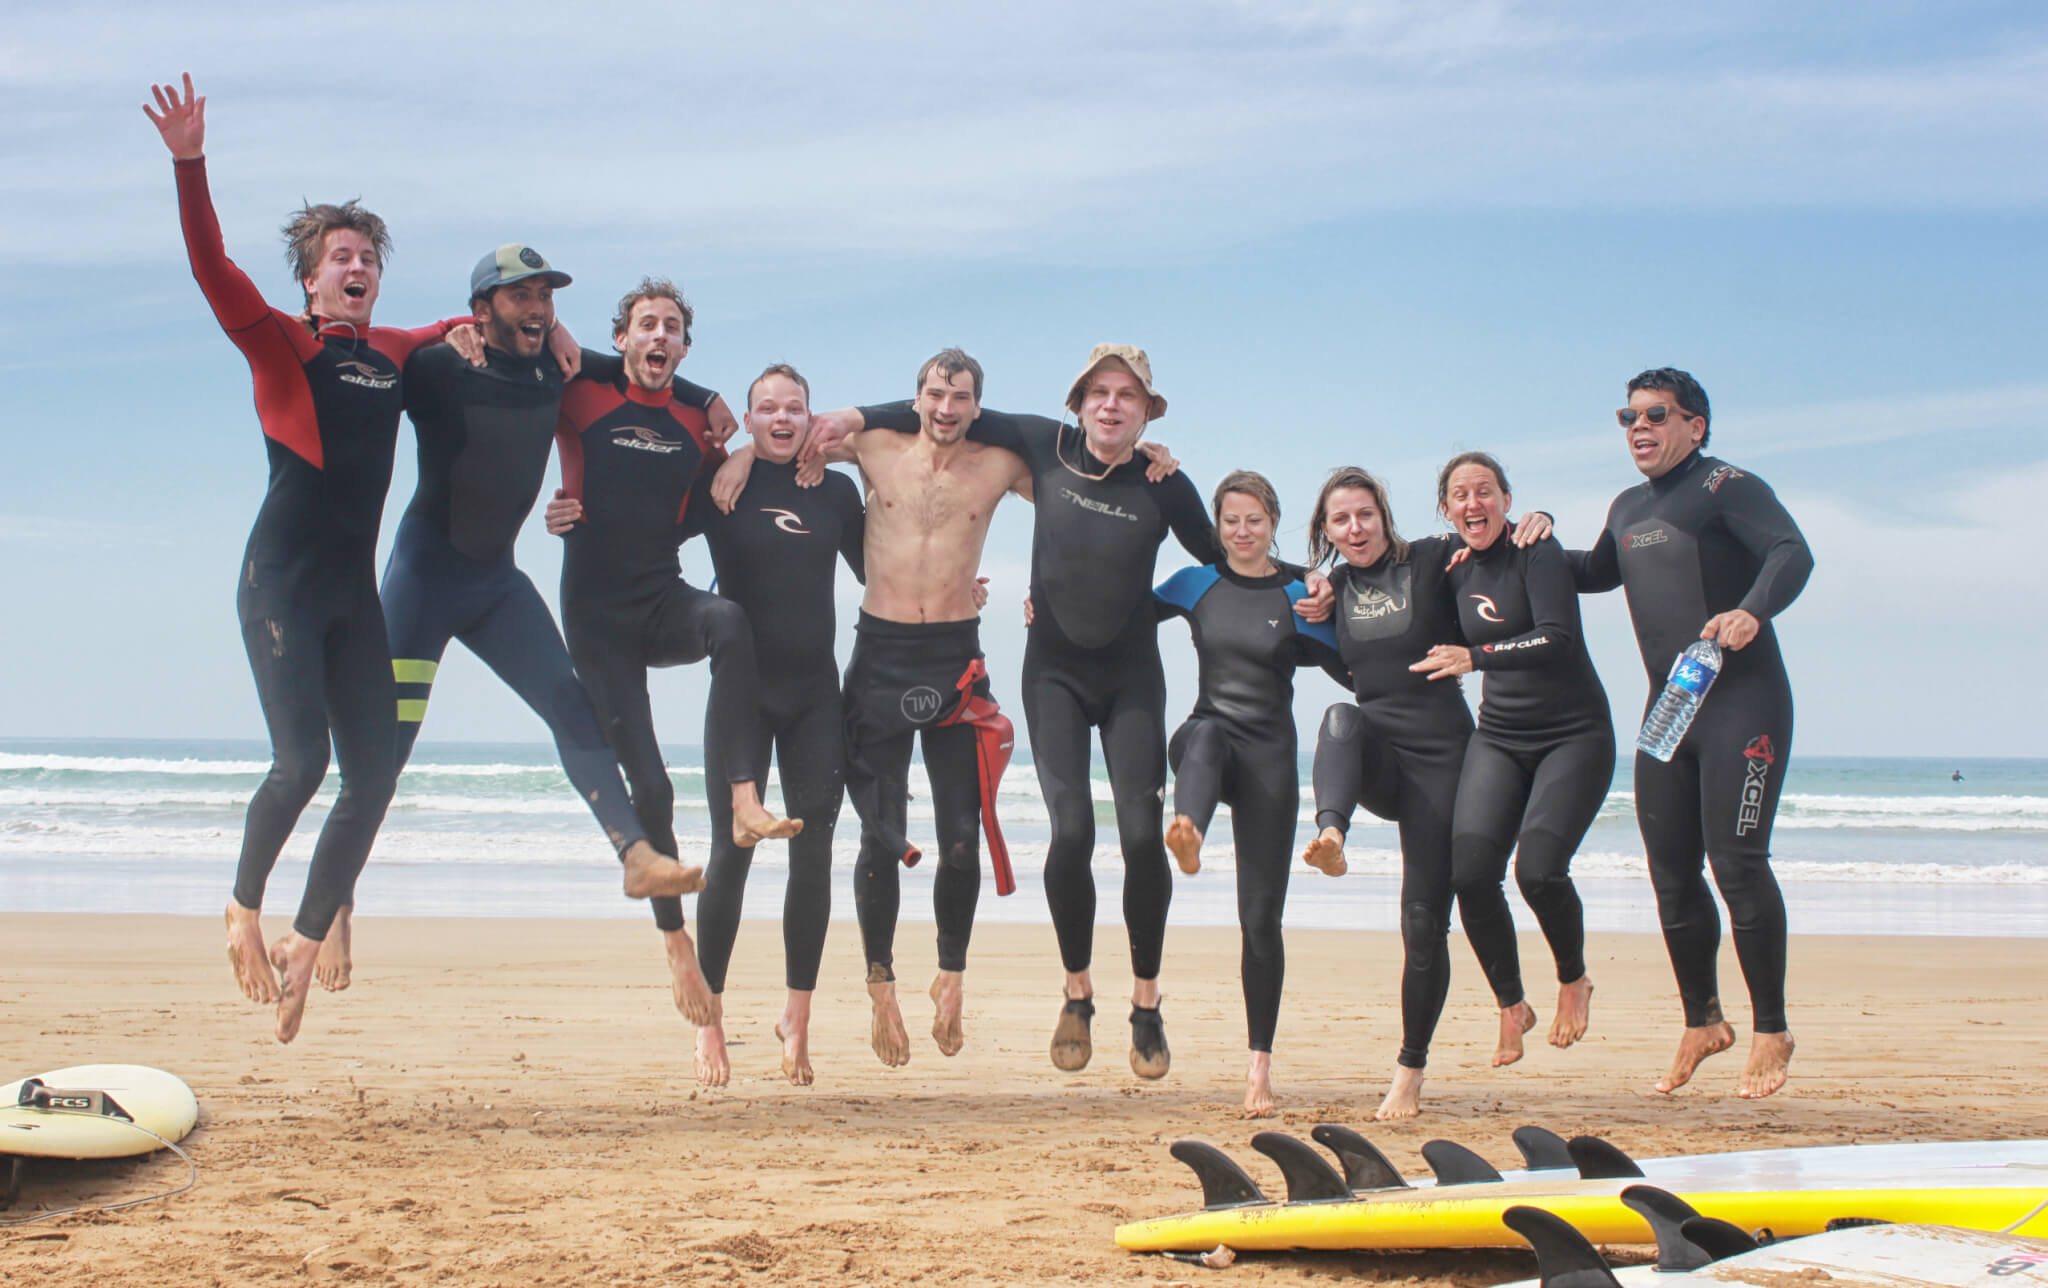 Solid Surfhouse - Morocco - group - friends - fun - surfclass